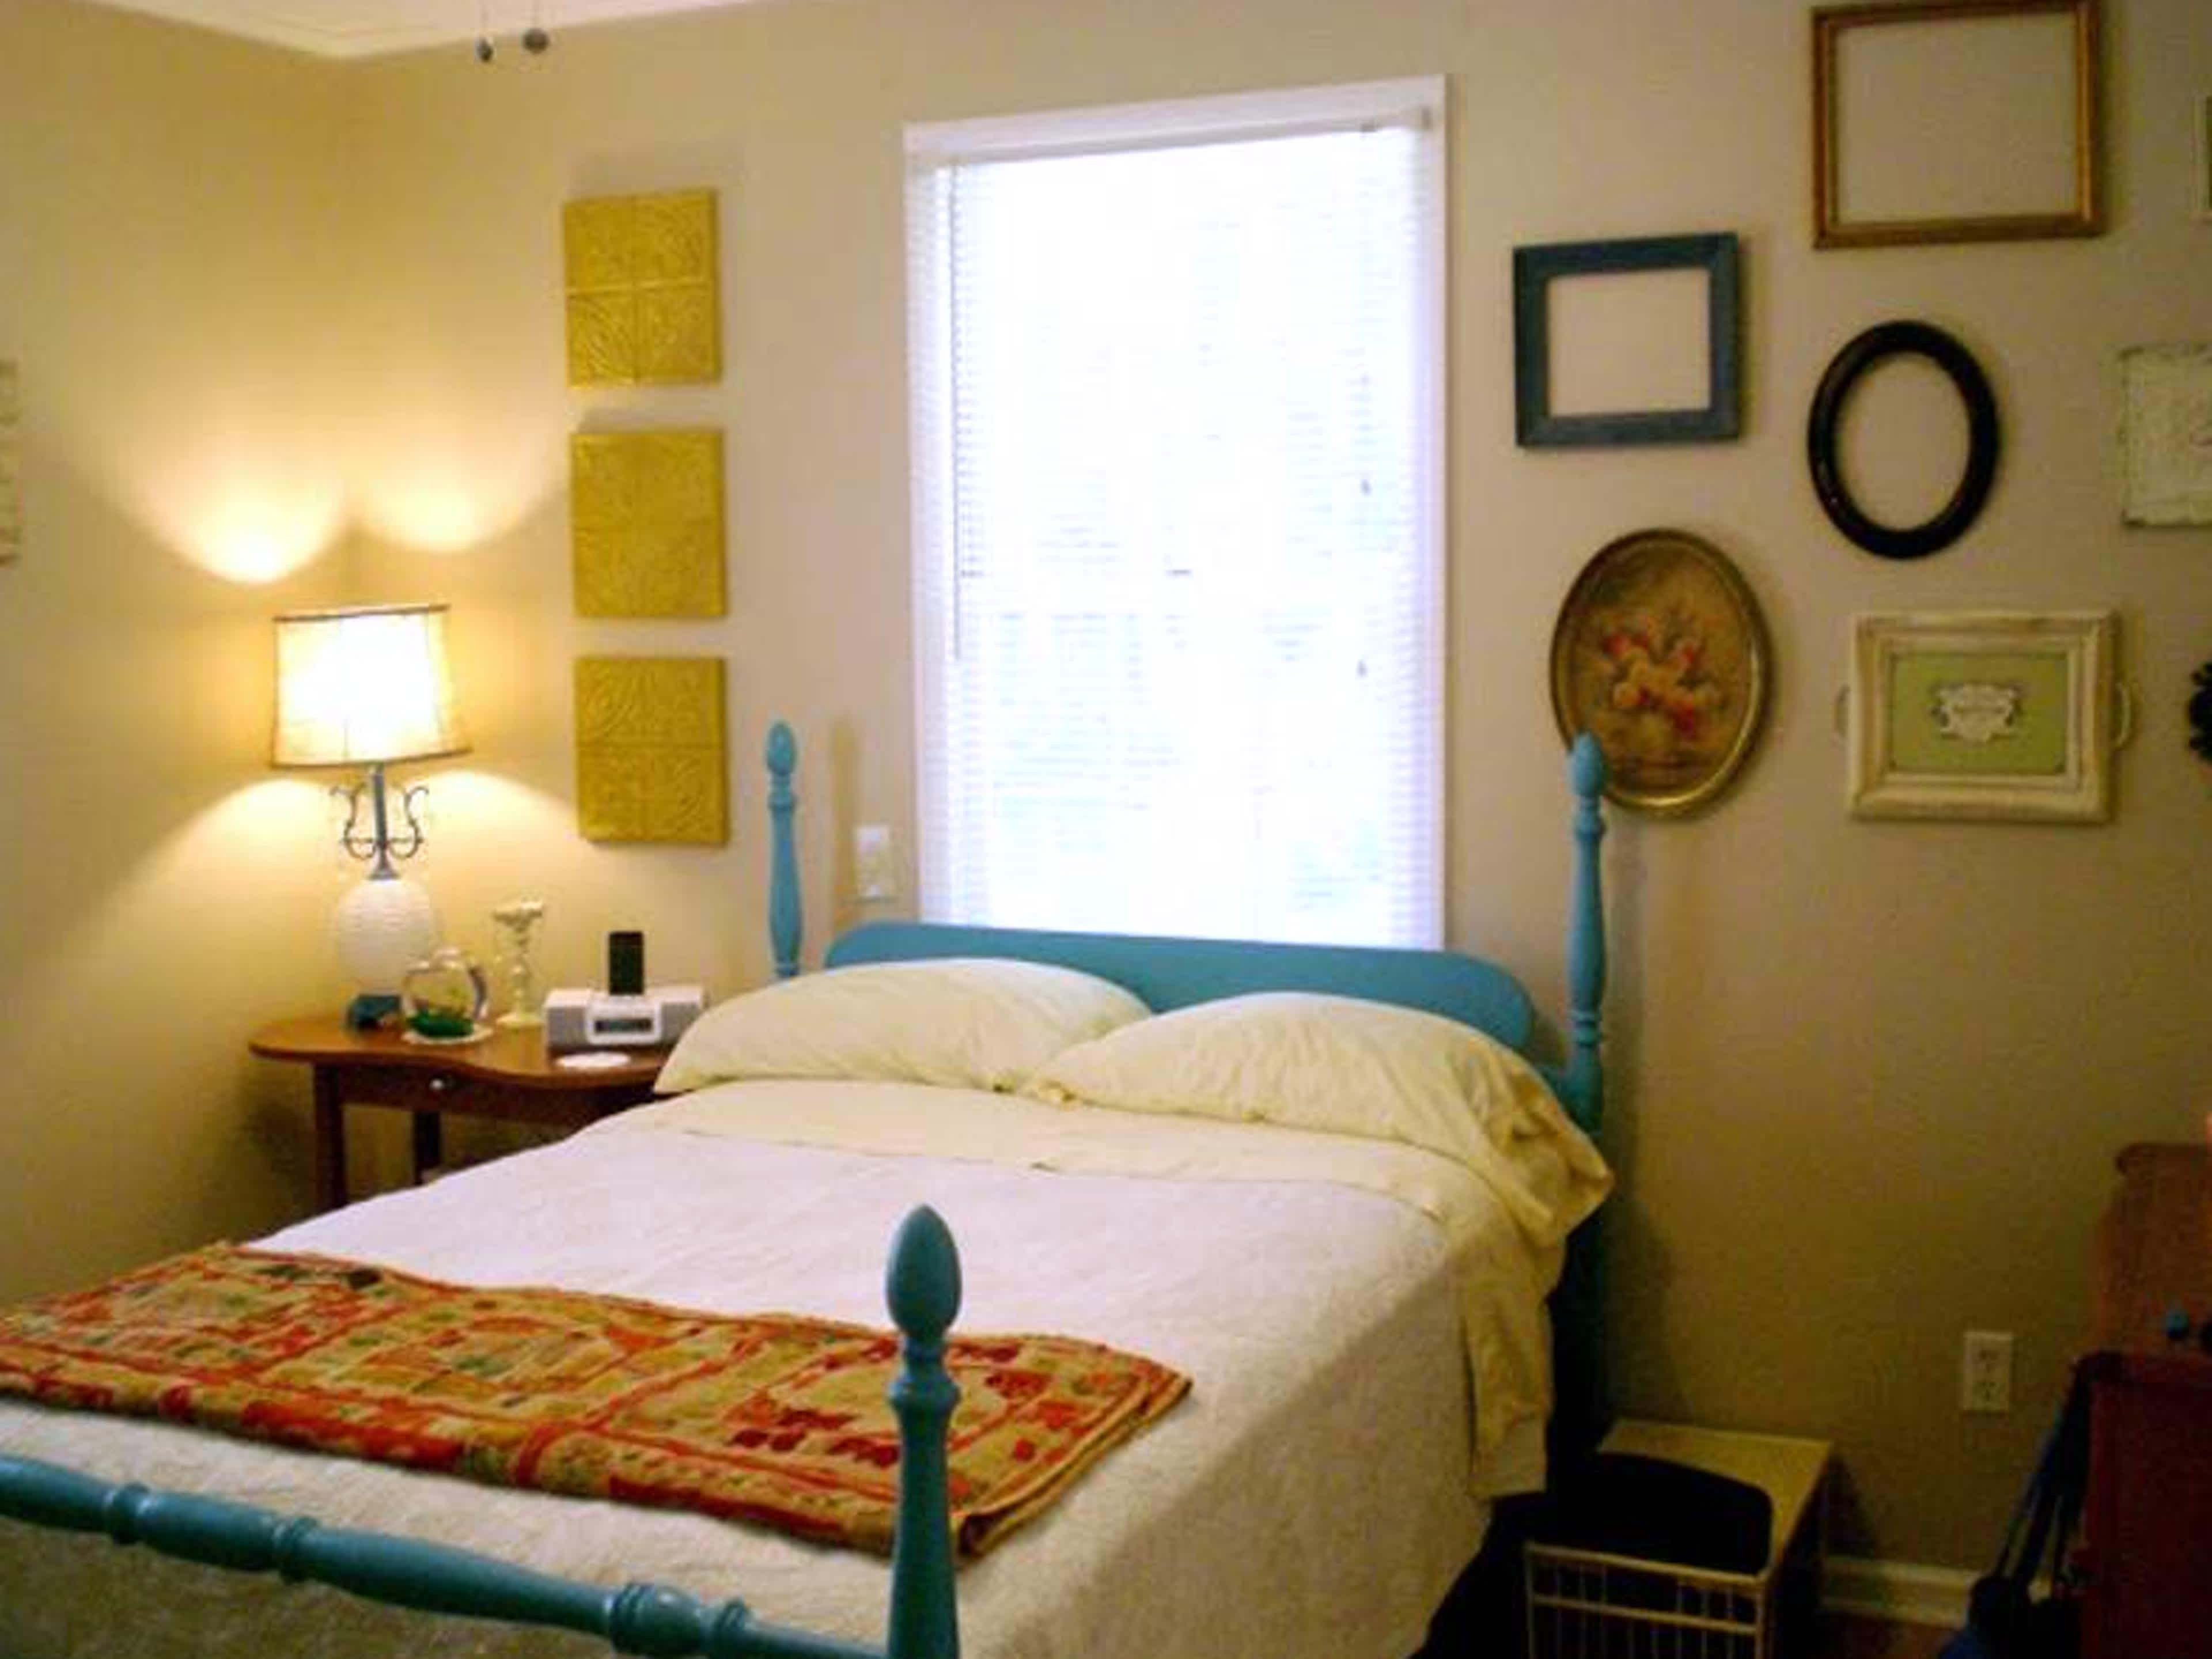 Bedroom Decorating Ideas Budget Until Small